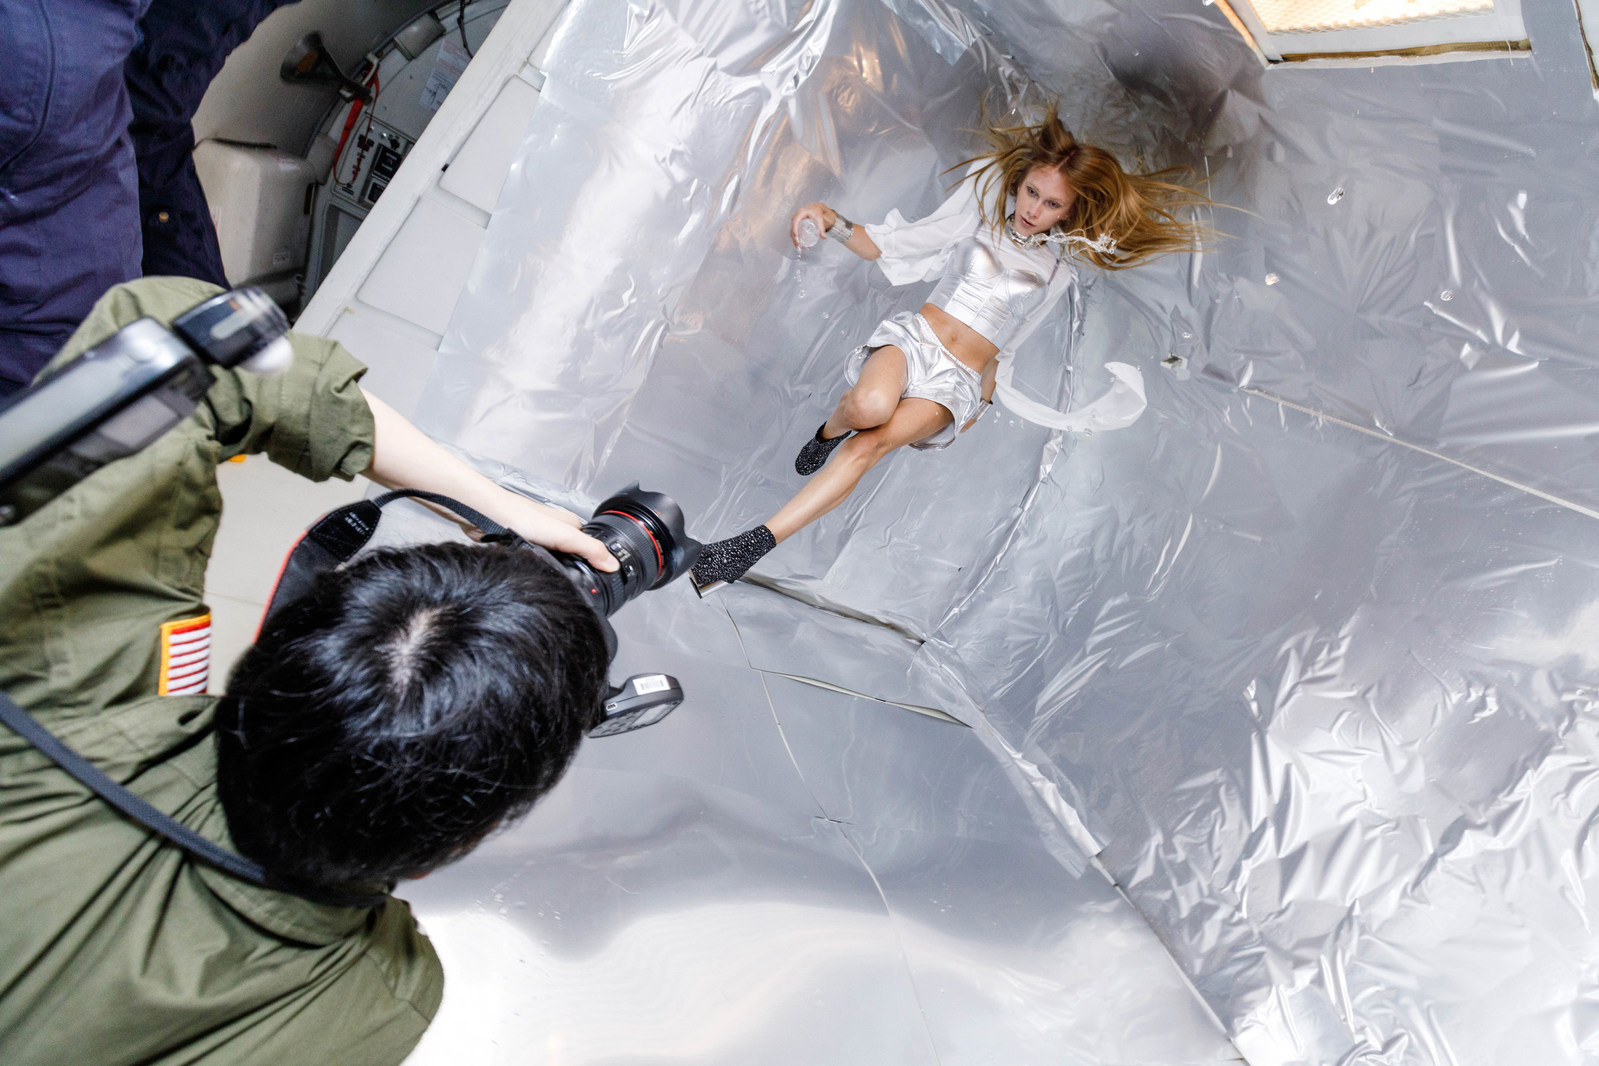 Stav Strashko gracefully poses while experiencing weightlessness during Wix's Capture Your Dream Photo shoot in ZERO-GRAVITY. Source: Reiko Wakai for Wix.com's Capture Your Dream Photo campaign